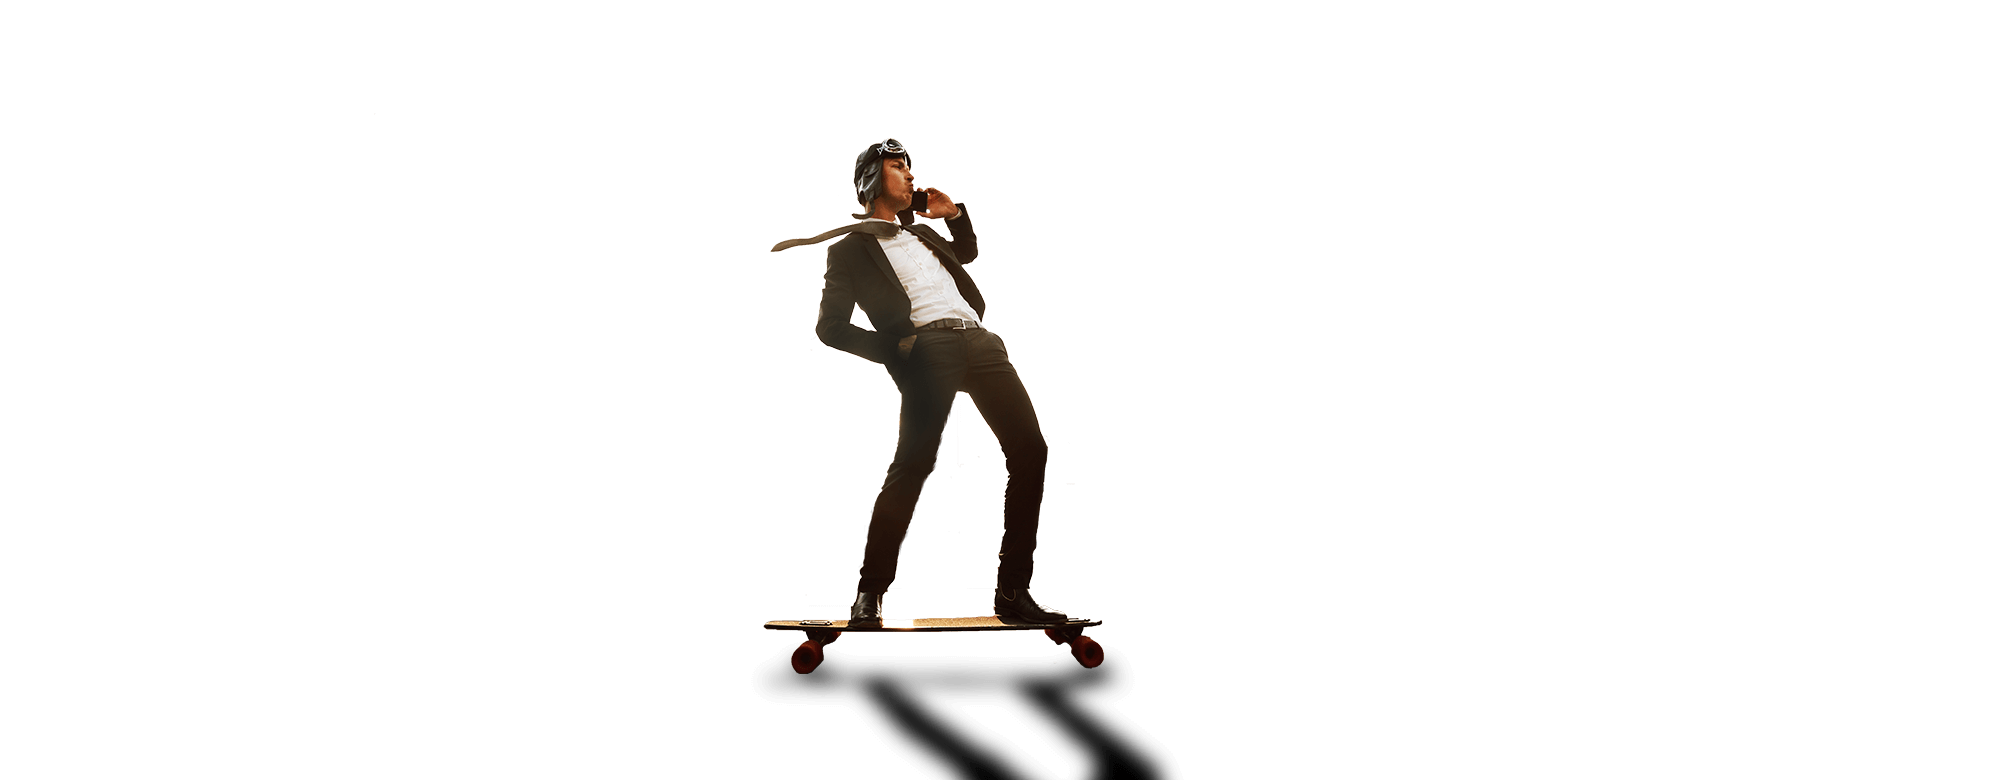 Skating-Man-2.png